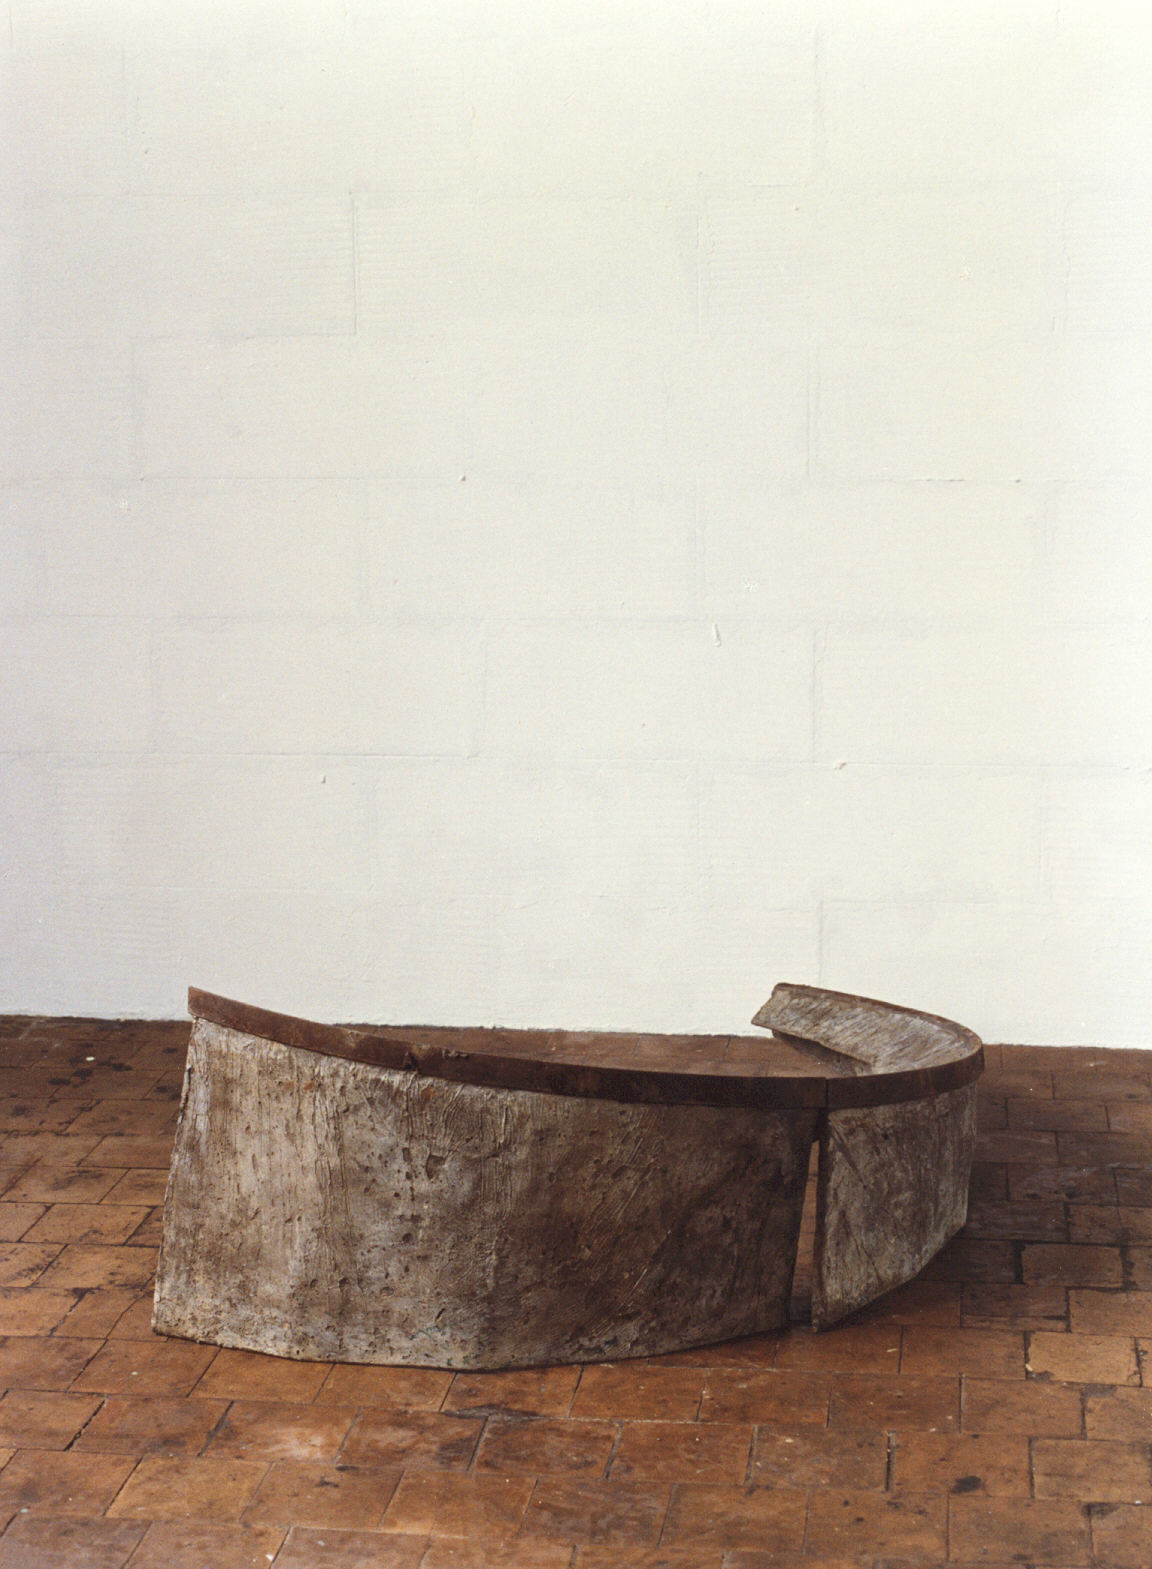 1989-z.t.-aluminiumcement, staal, 130x45x70cm